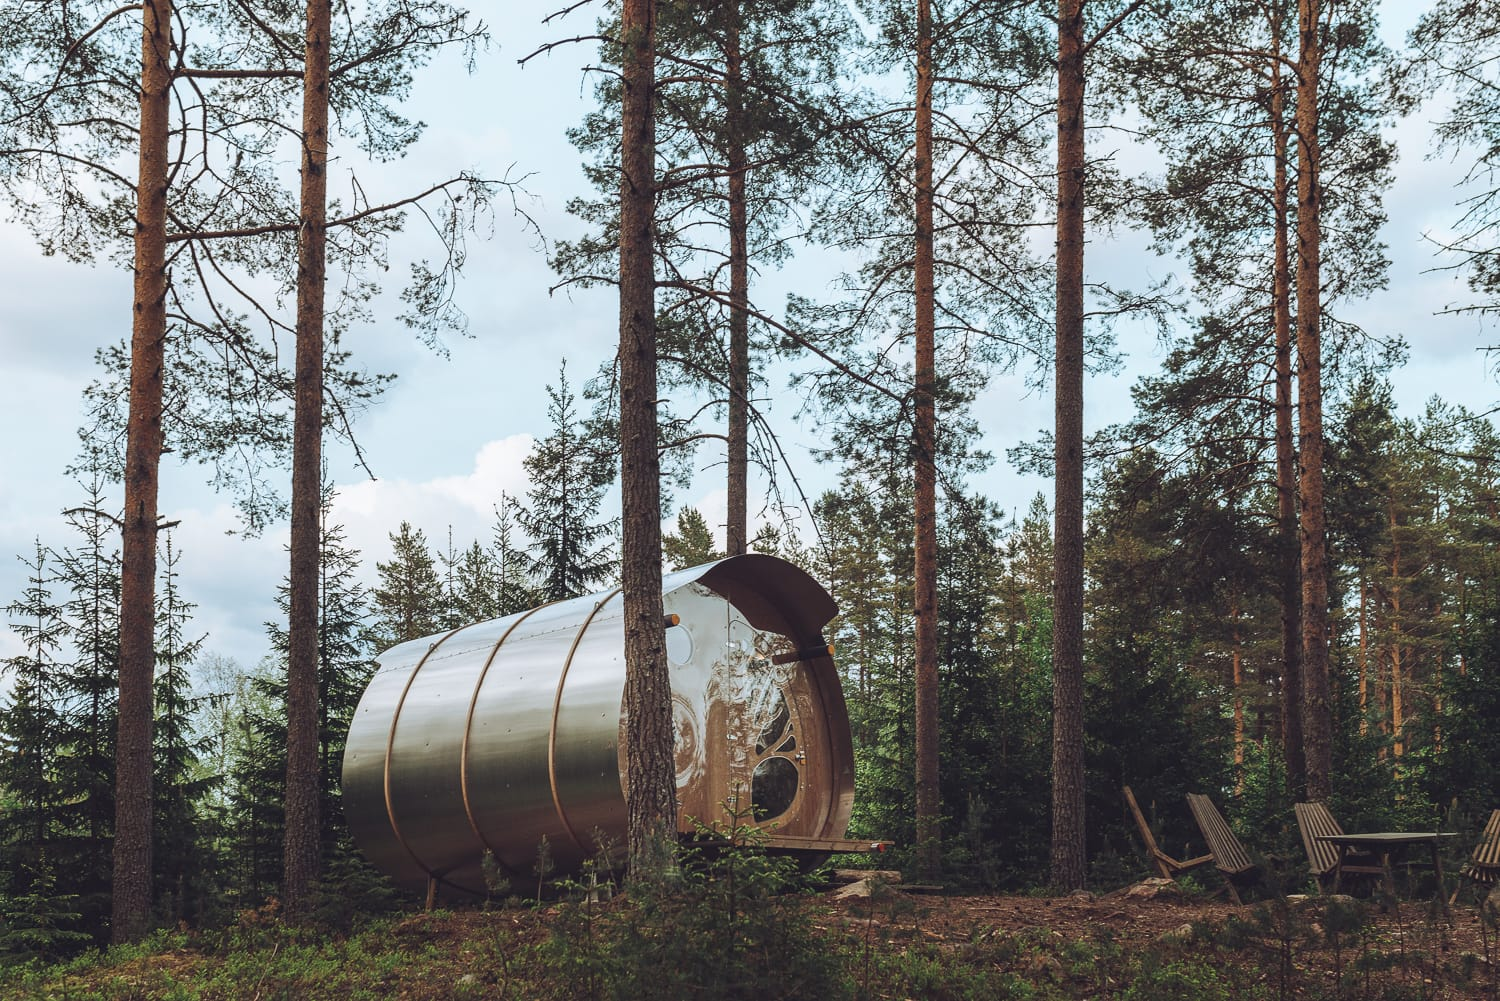 Odds Öga, The Fuselage, at Marcusgården in Dalarna